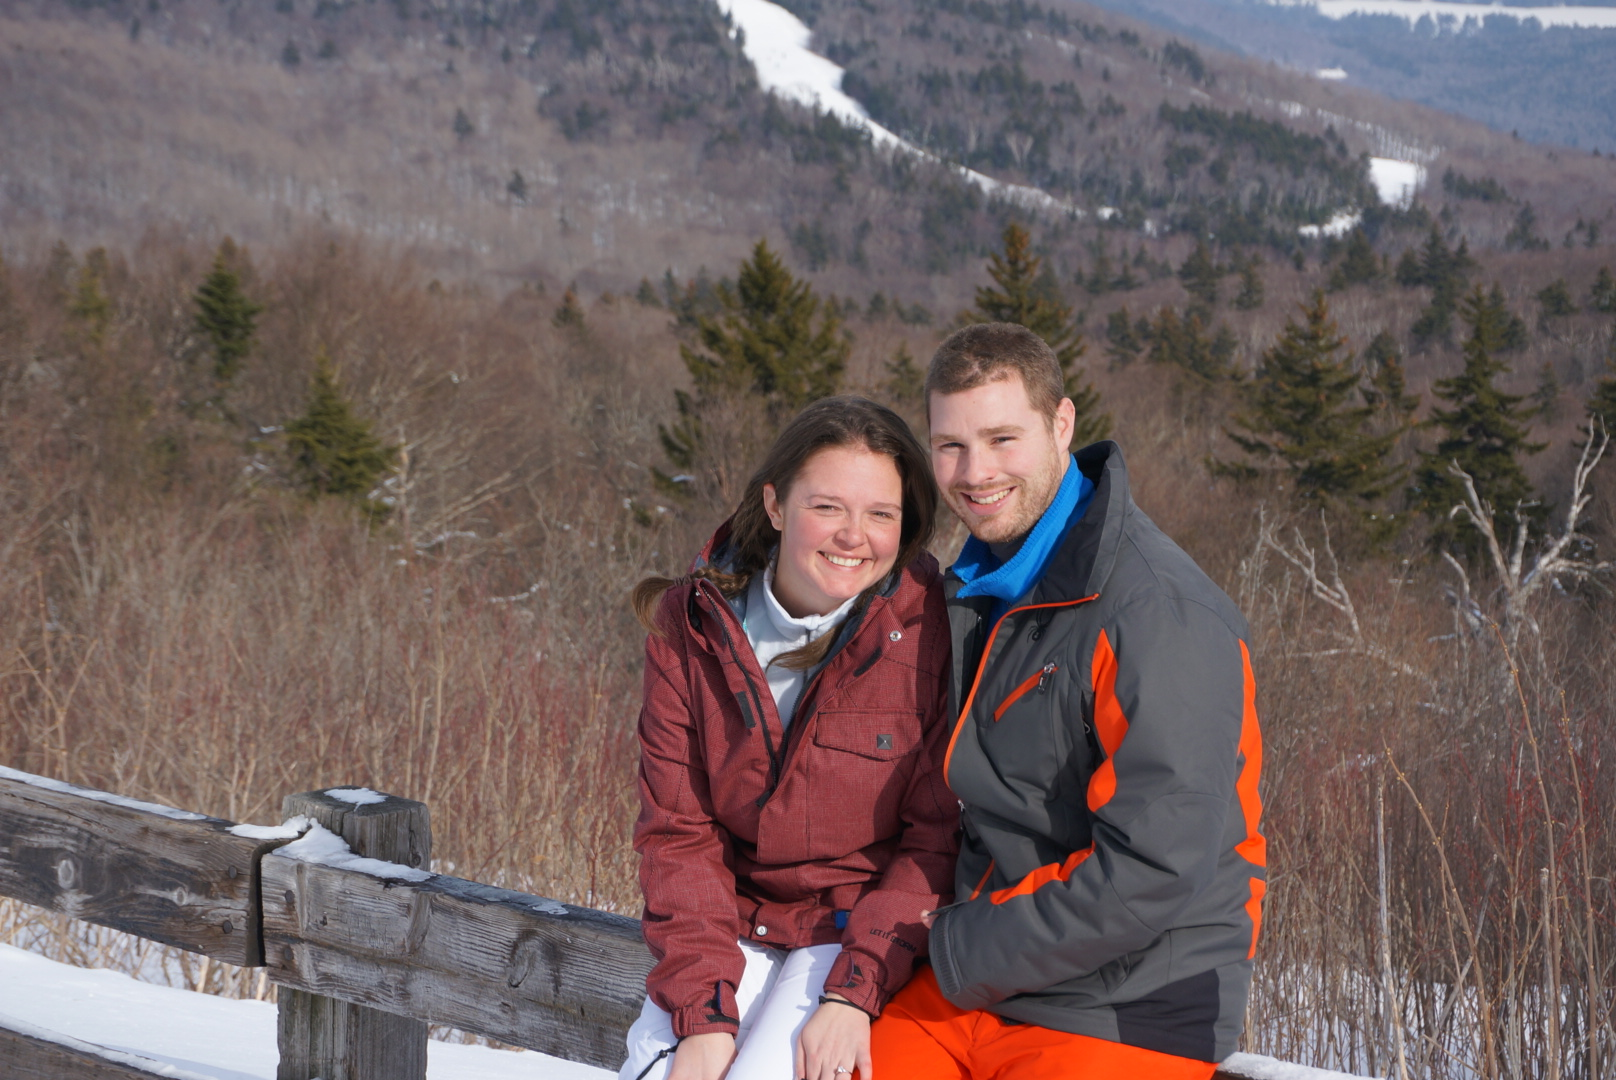 Image 13 of Sarah and Jimmy | The Perfect Mountaintop Proposal